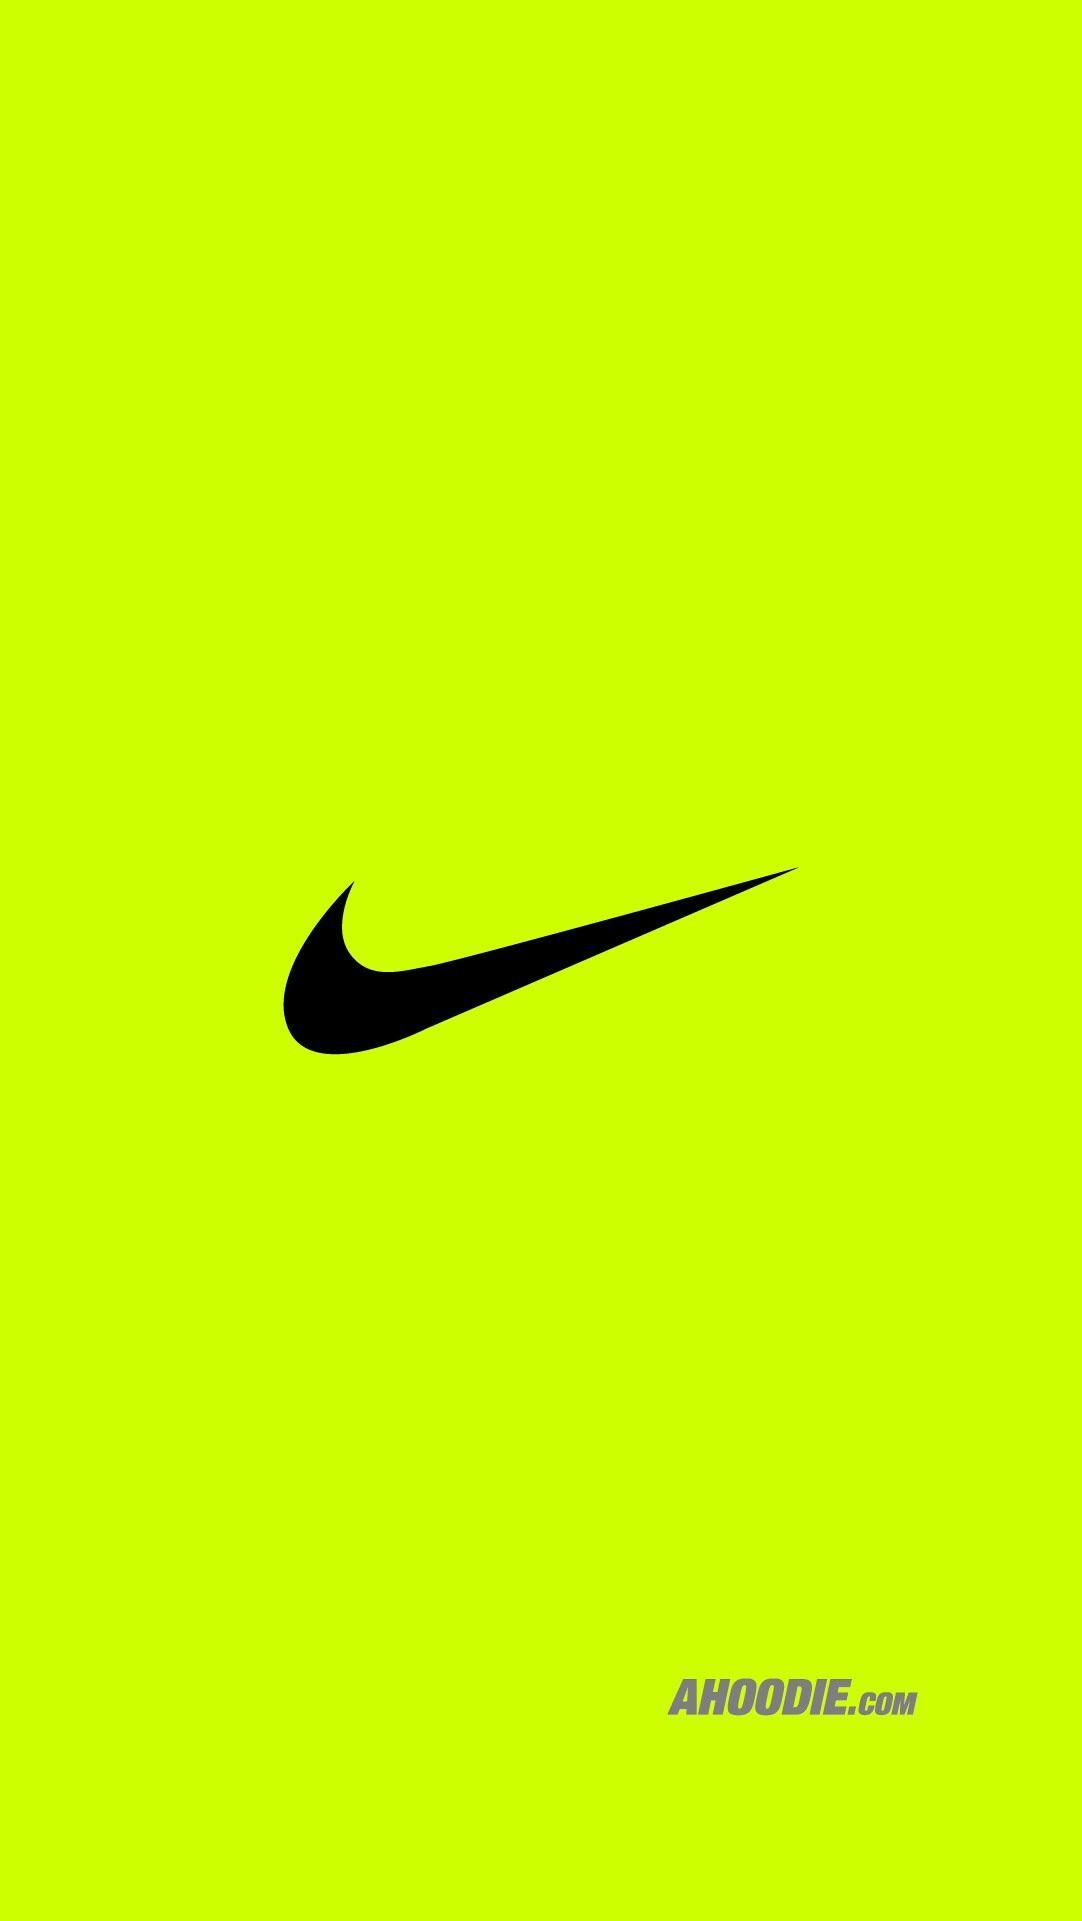 Can Anyone Remove The Ahoodie Com Please And Thank You Iphone X Wallpapers Iphonexwallpaperfull Nike Wallpaper Wallpaper Iphone Neon Nike Logo Wallpapers